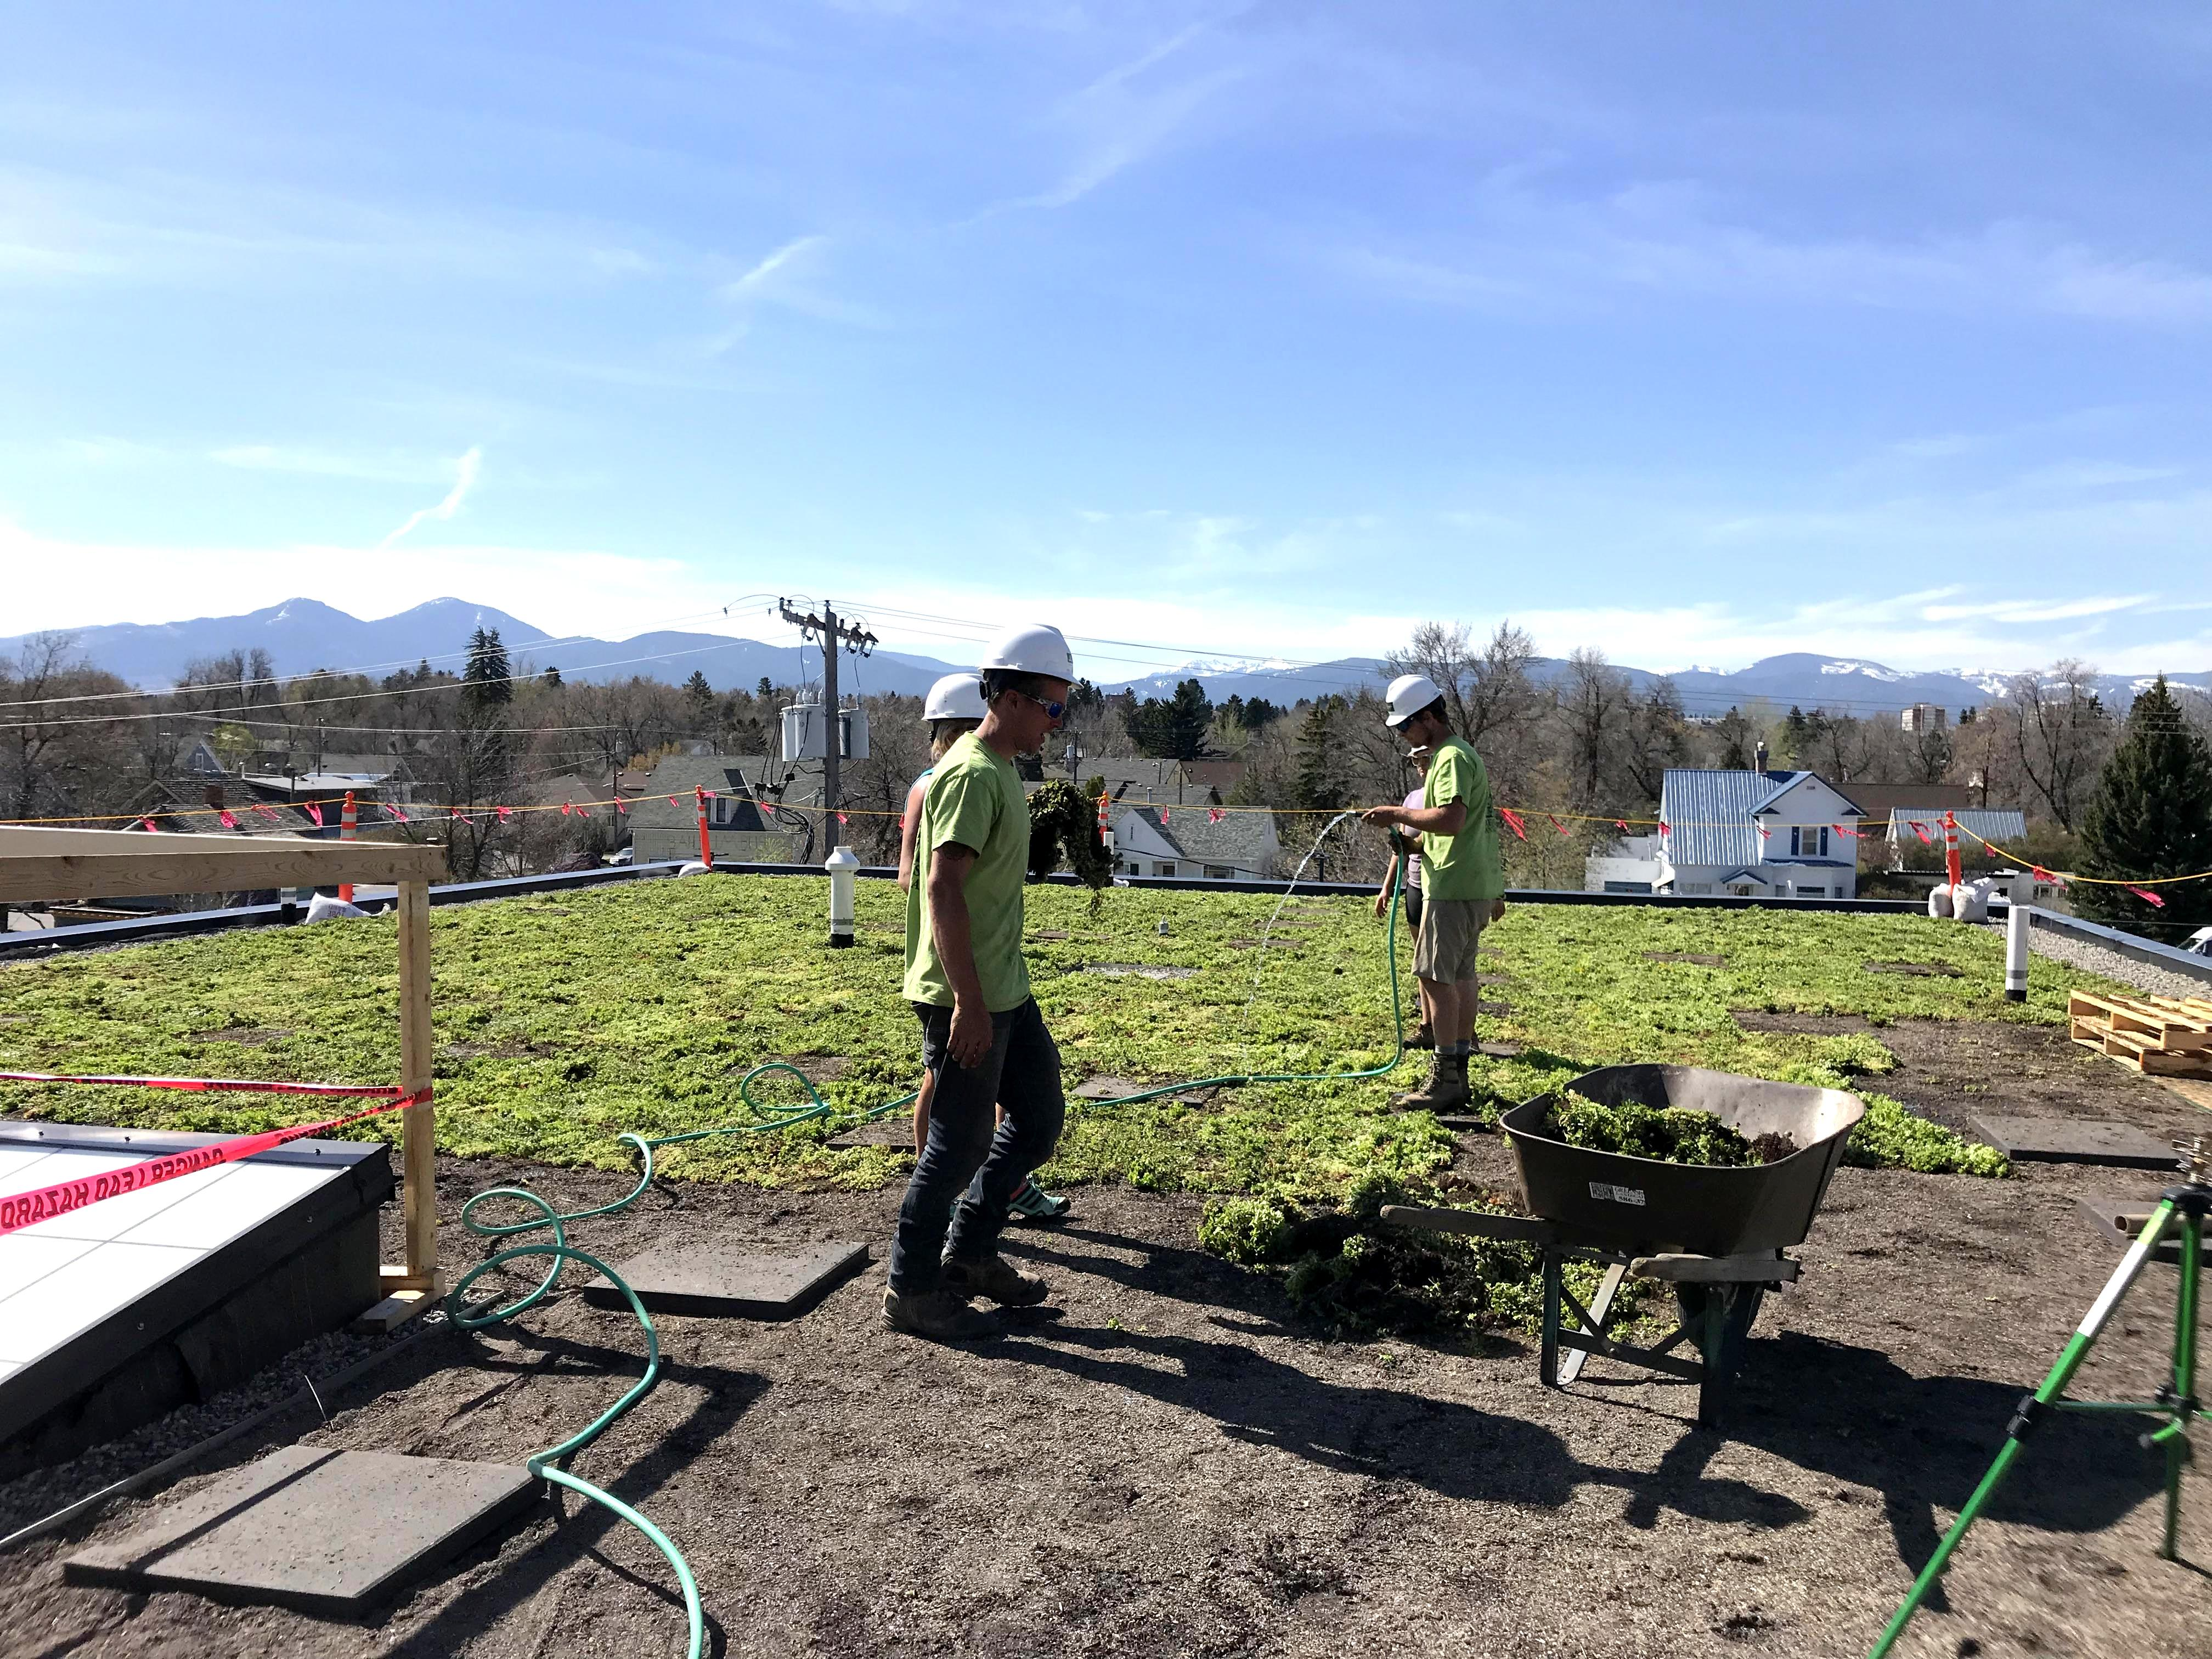 Bozeman Co-op expands with new sustainable building featuring a green roof